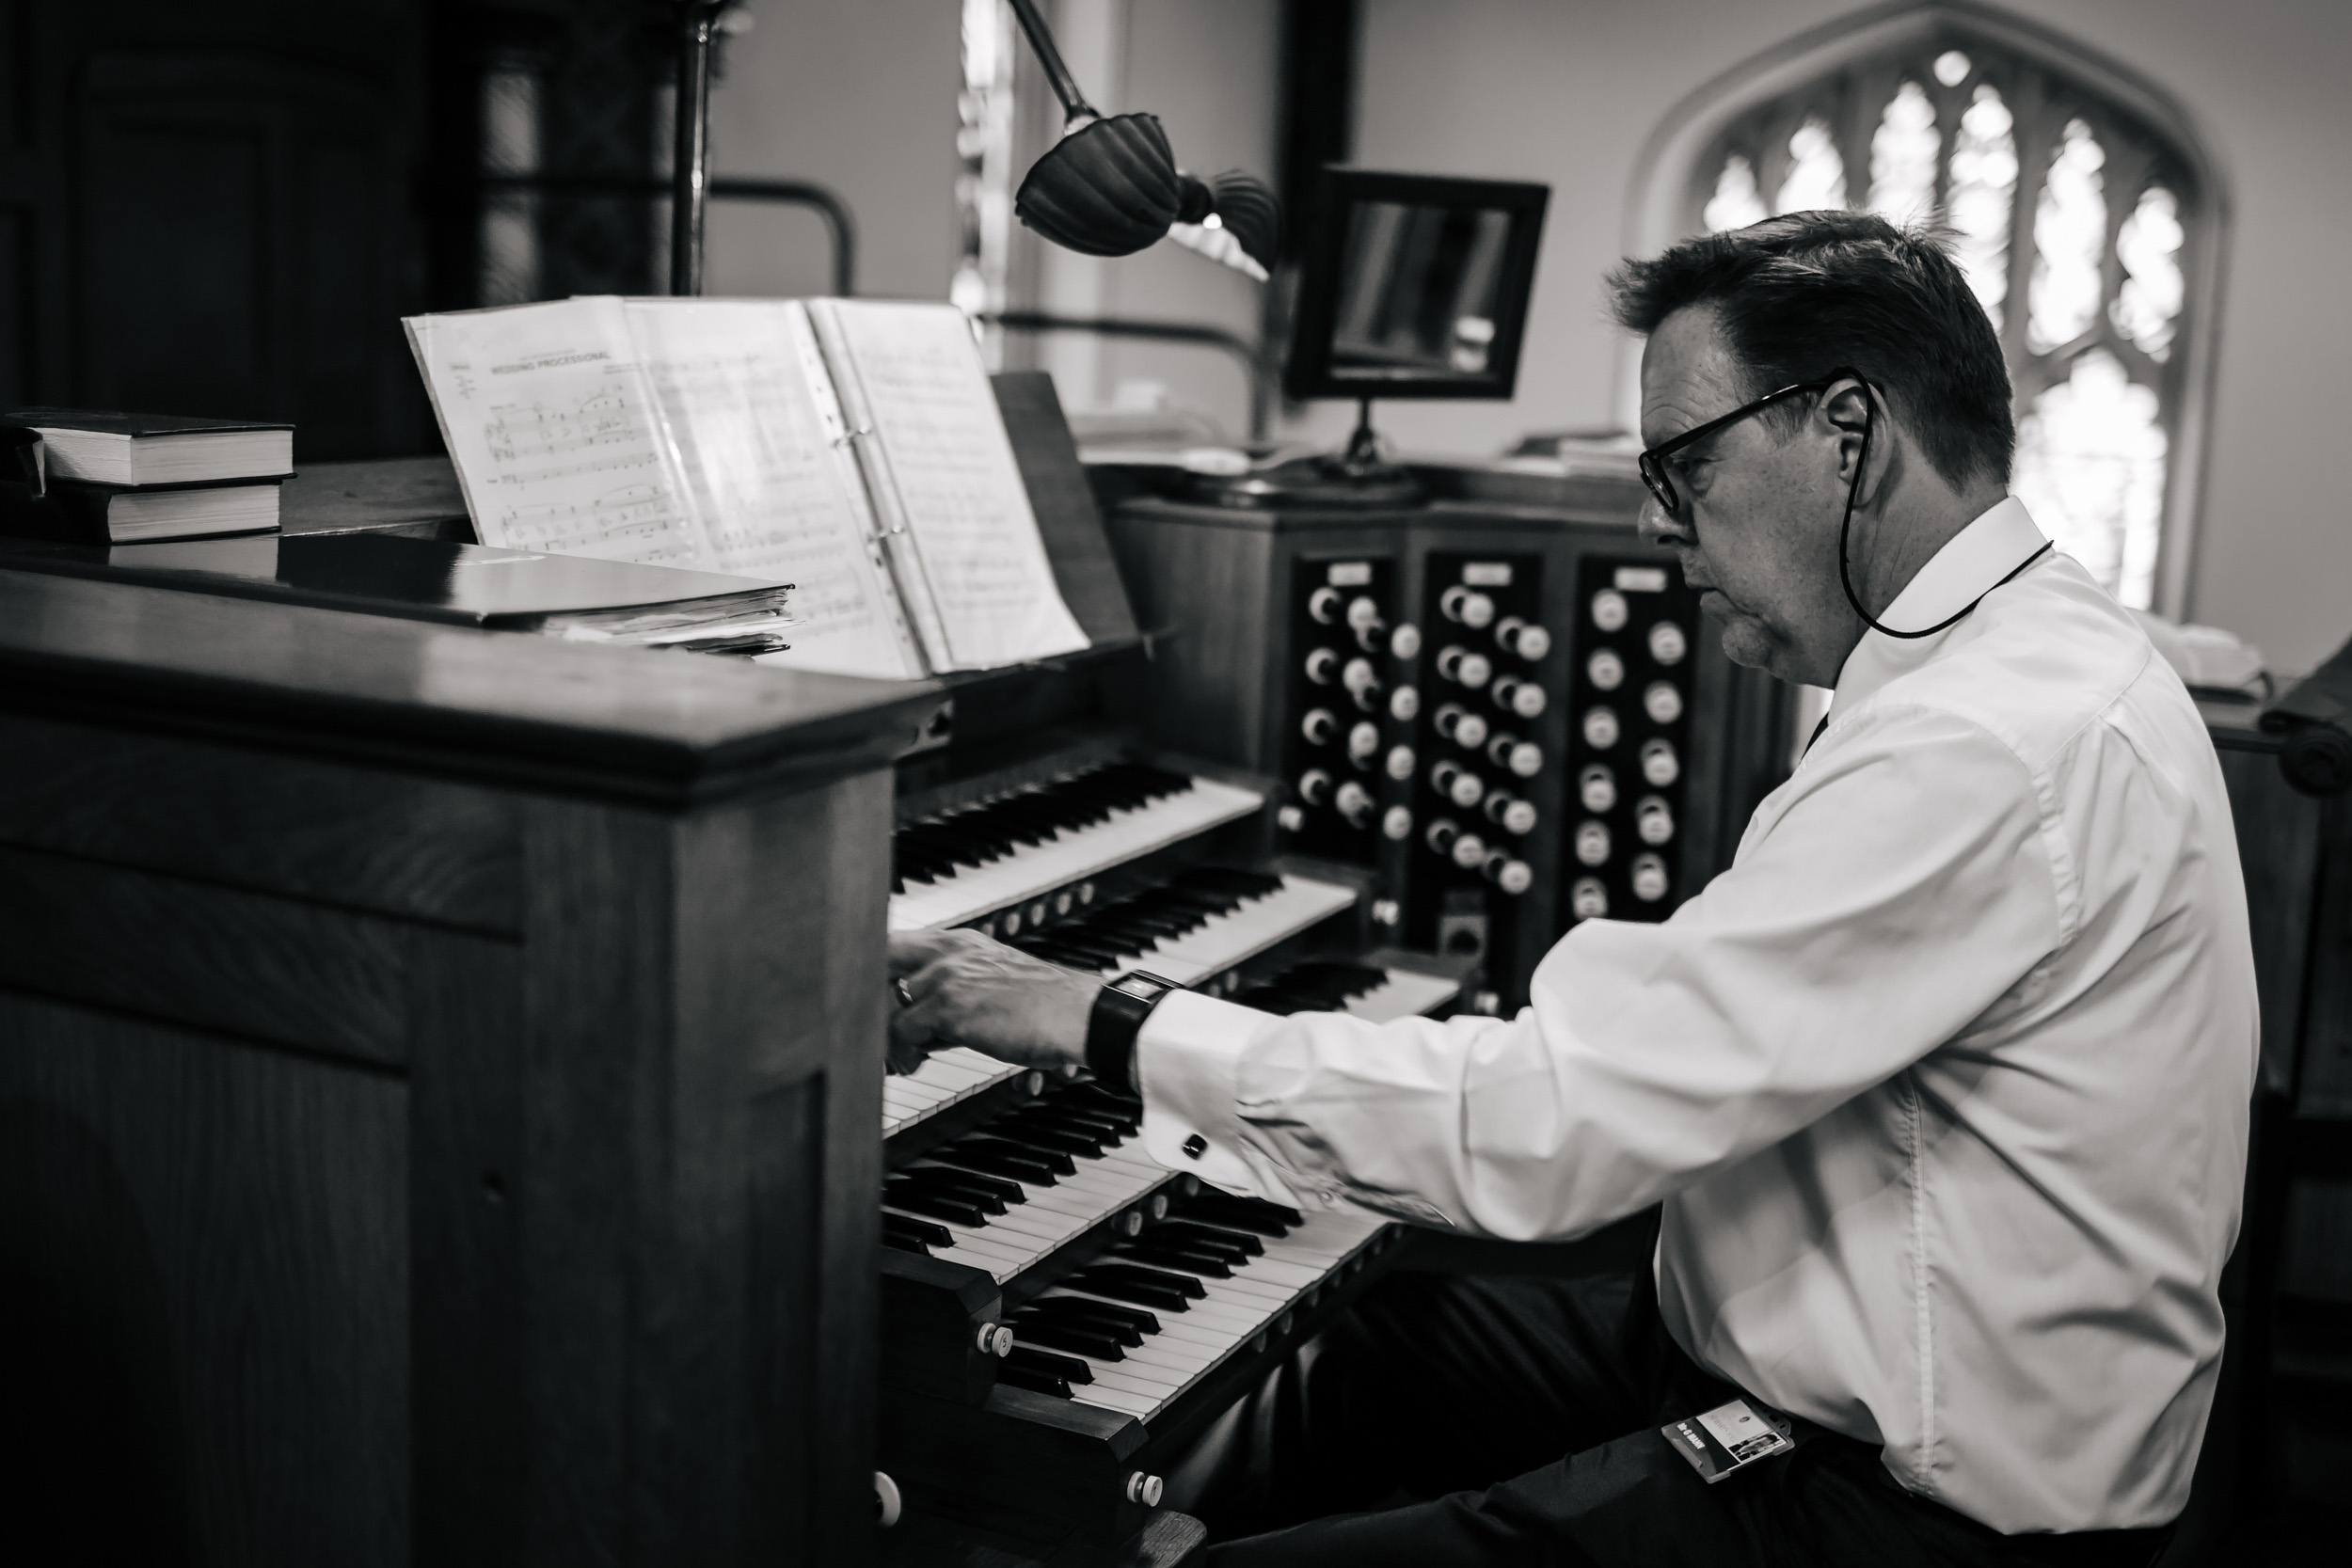 Church organist performs at a wedding at Stonyhurst College